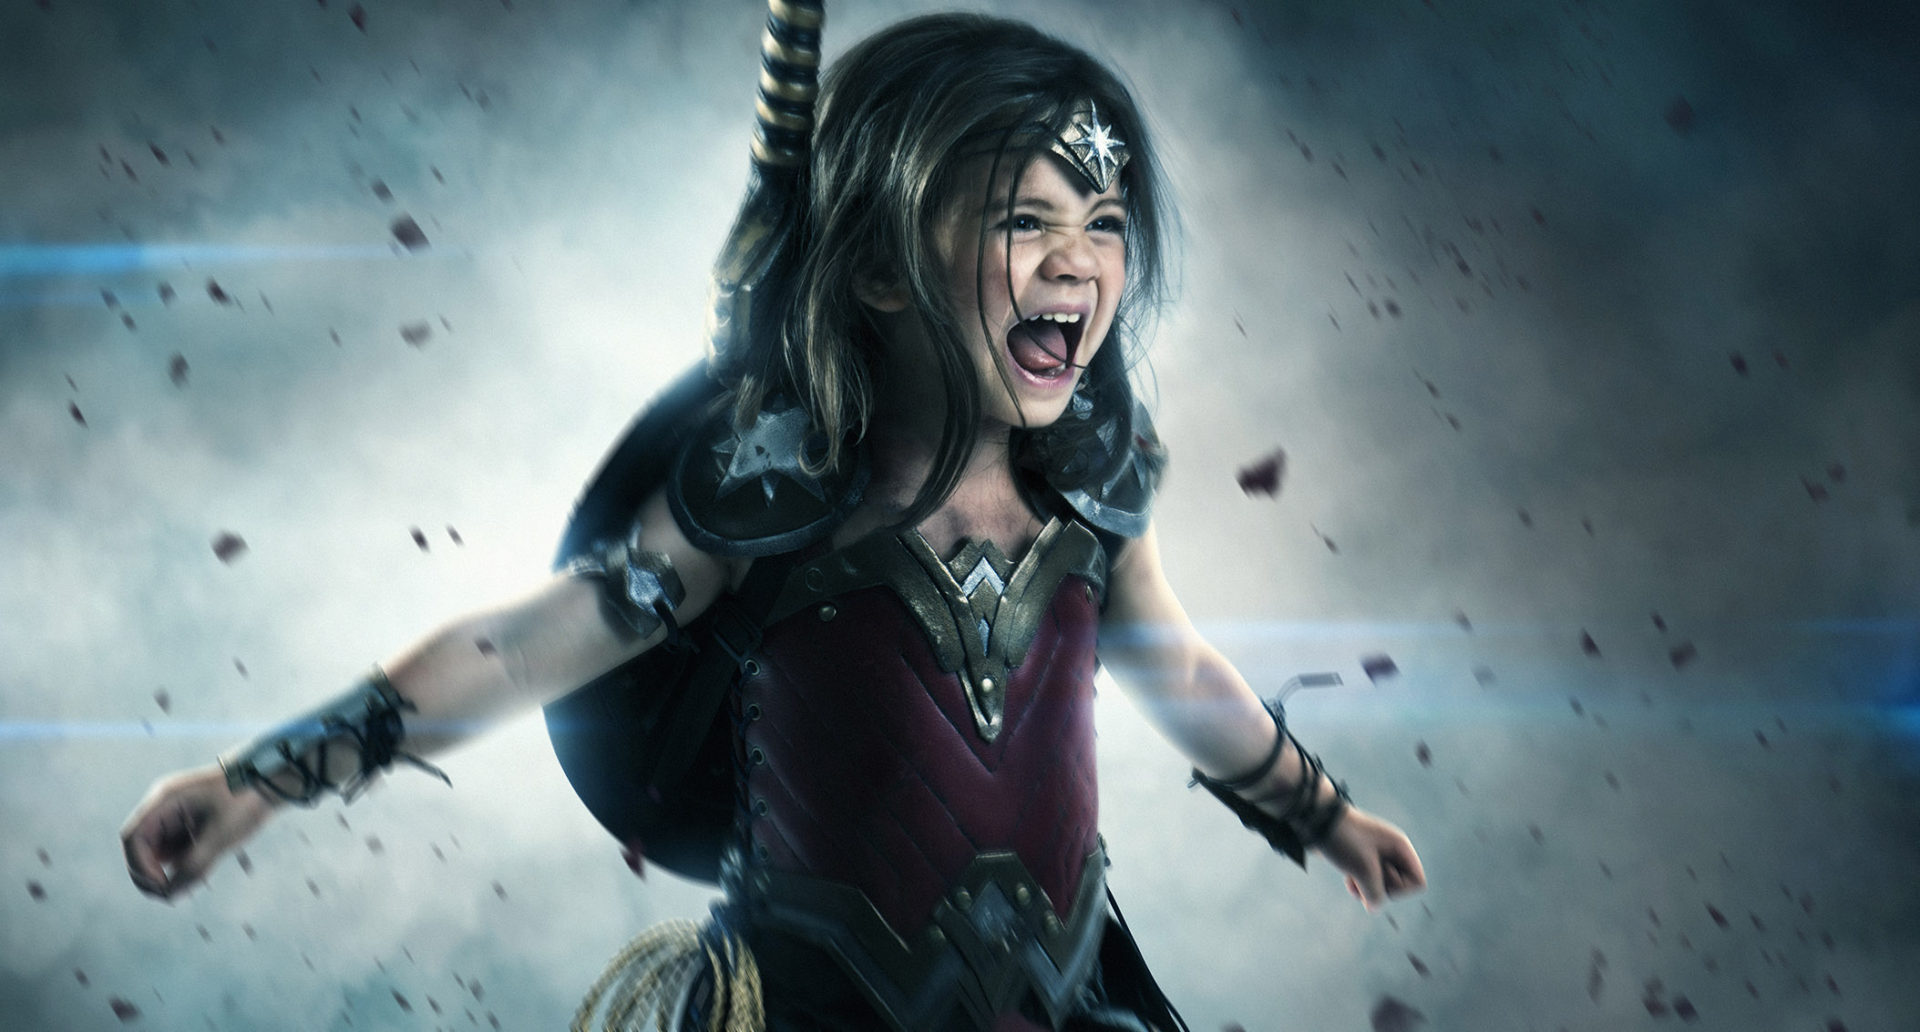 Wonder woman series commercial and advertising for Best online photo gallery